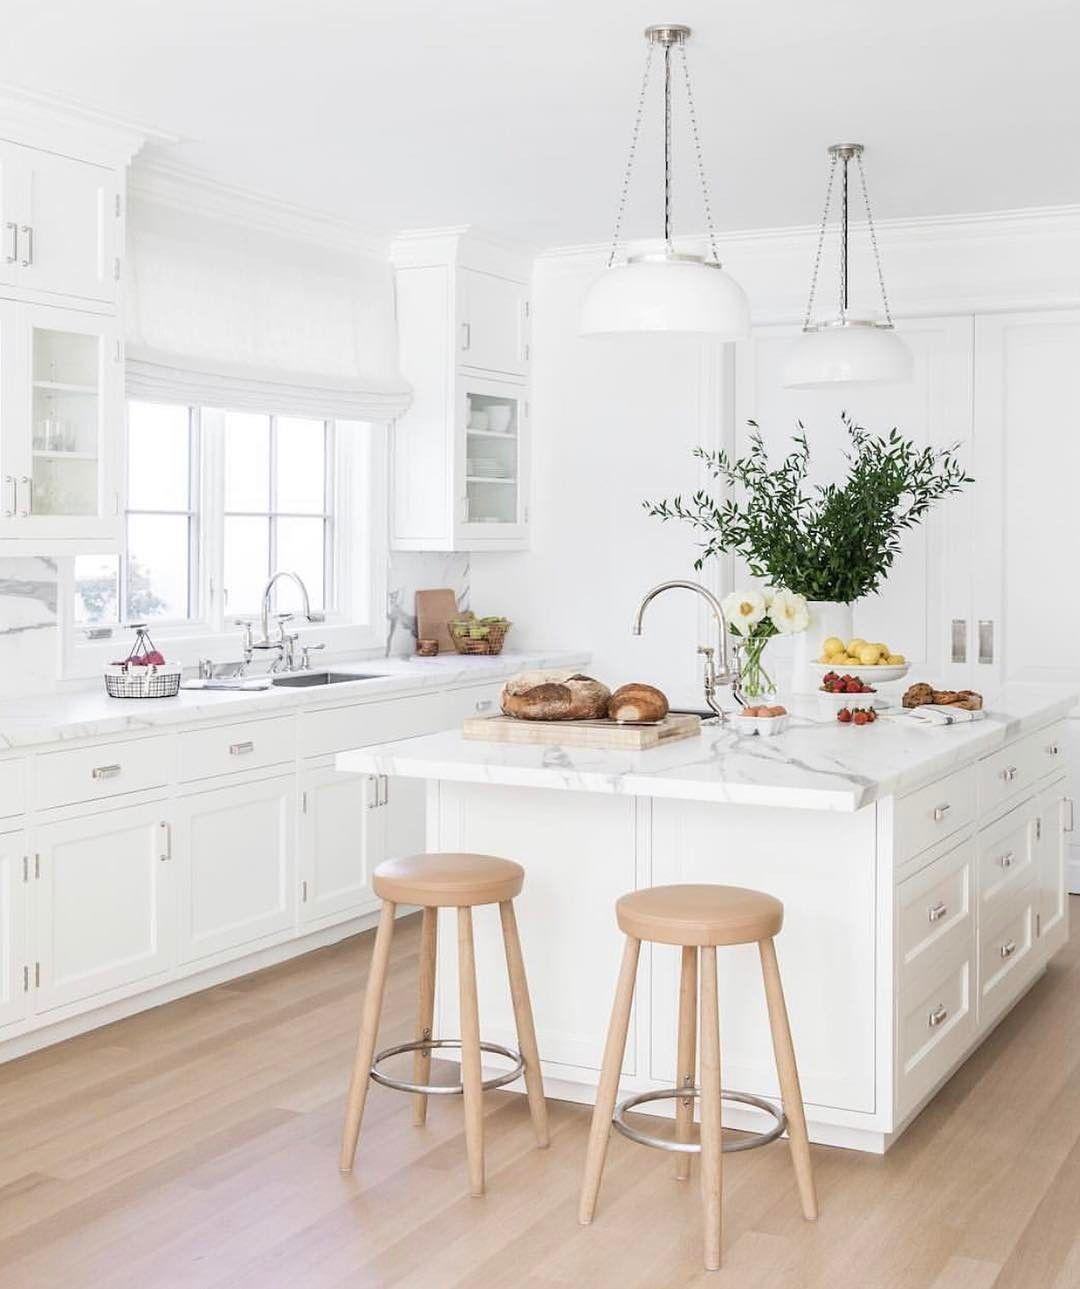 "Lauren Conrad Co. on Instagram: ""latest kitchen crush: this space designed by @kapitomullerinterior. loving these natural wood barstools with the white marble countertops.…"" #kitchencrushes Lauren Conrad Co. on Instagram: ""latest kitchen crush: this space designed by @kapitomullerinterior. loving these natural wood barstools with the white marble countertops.…"" #kitchencrushes Lauren Conrad Co. on Instagram: ""latest kitchen crush: this space designed by @kapitomullerinterior. lovin #kitchencrushes"